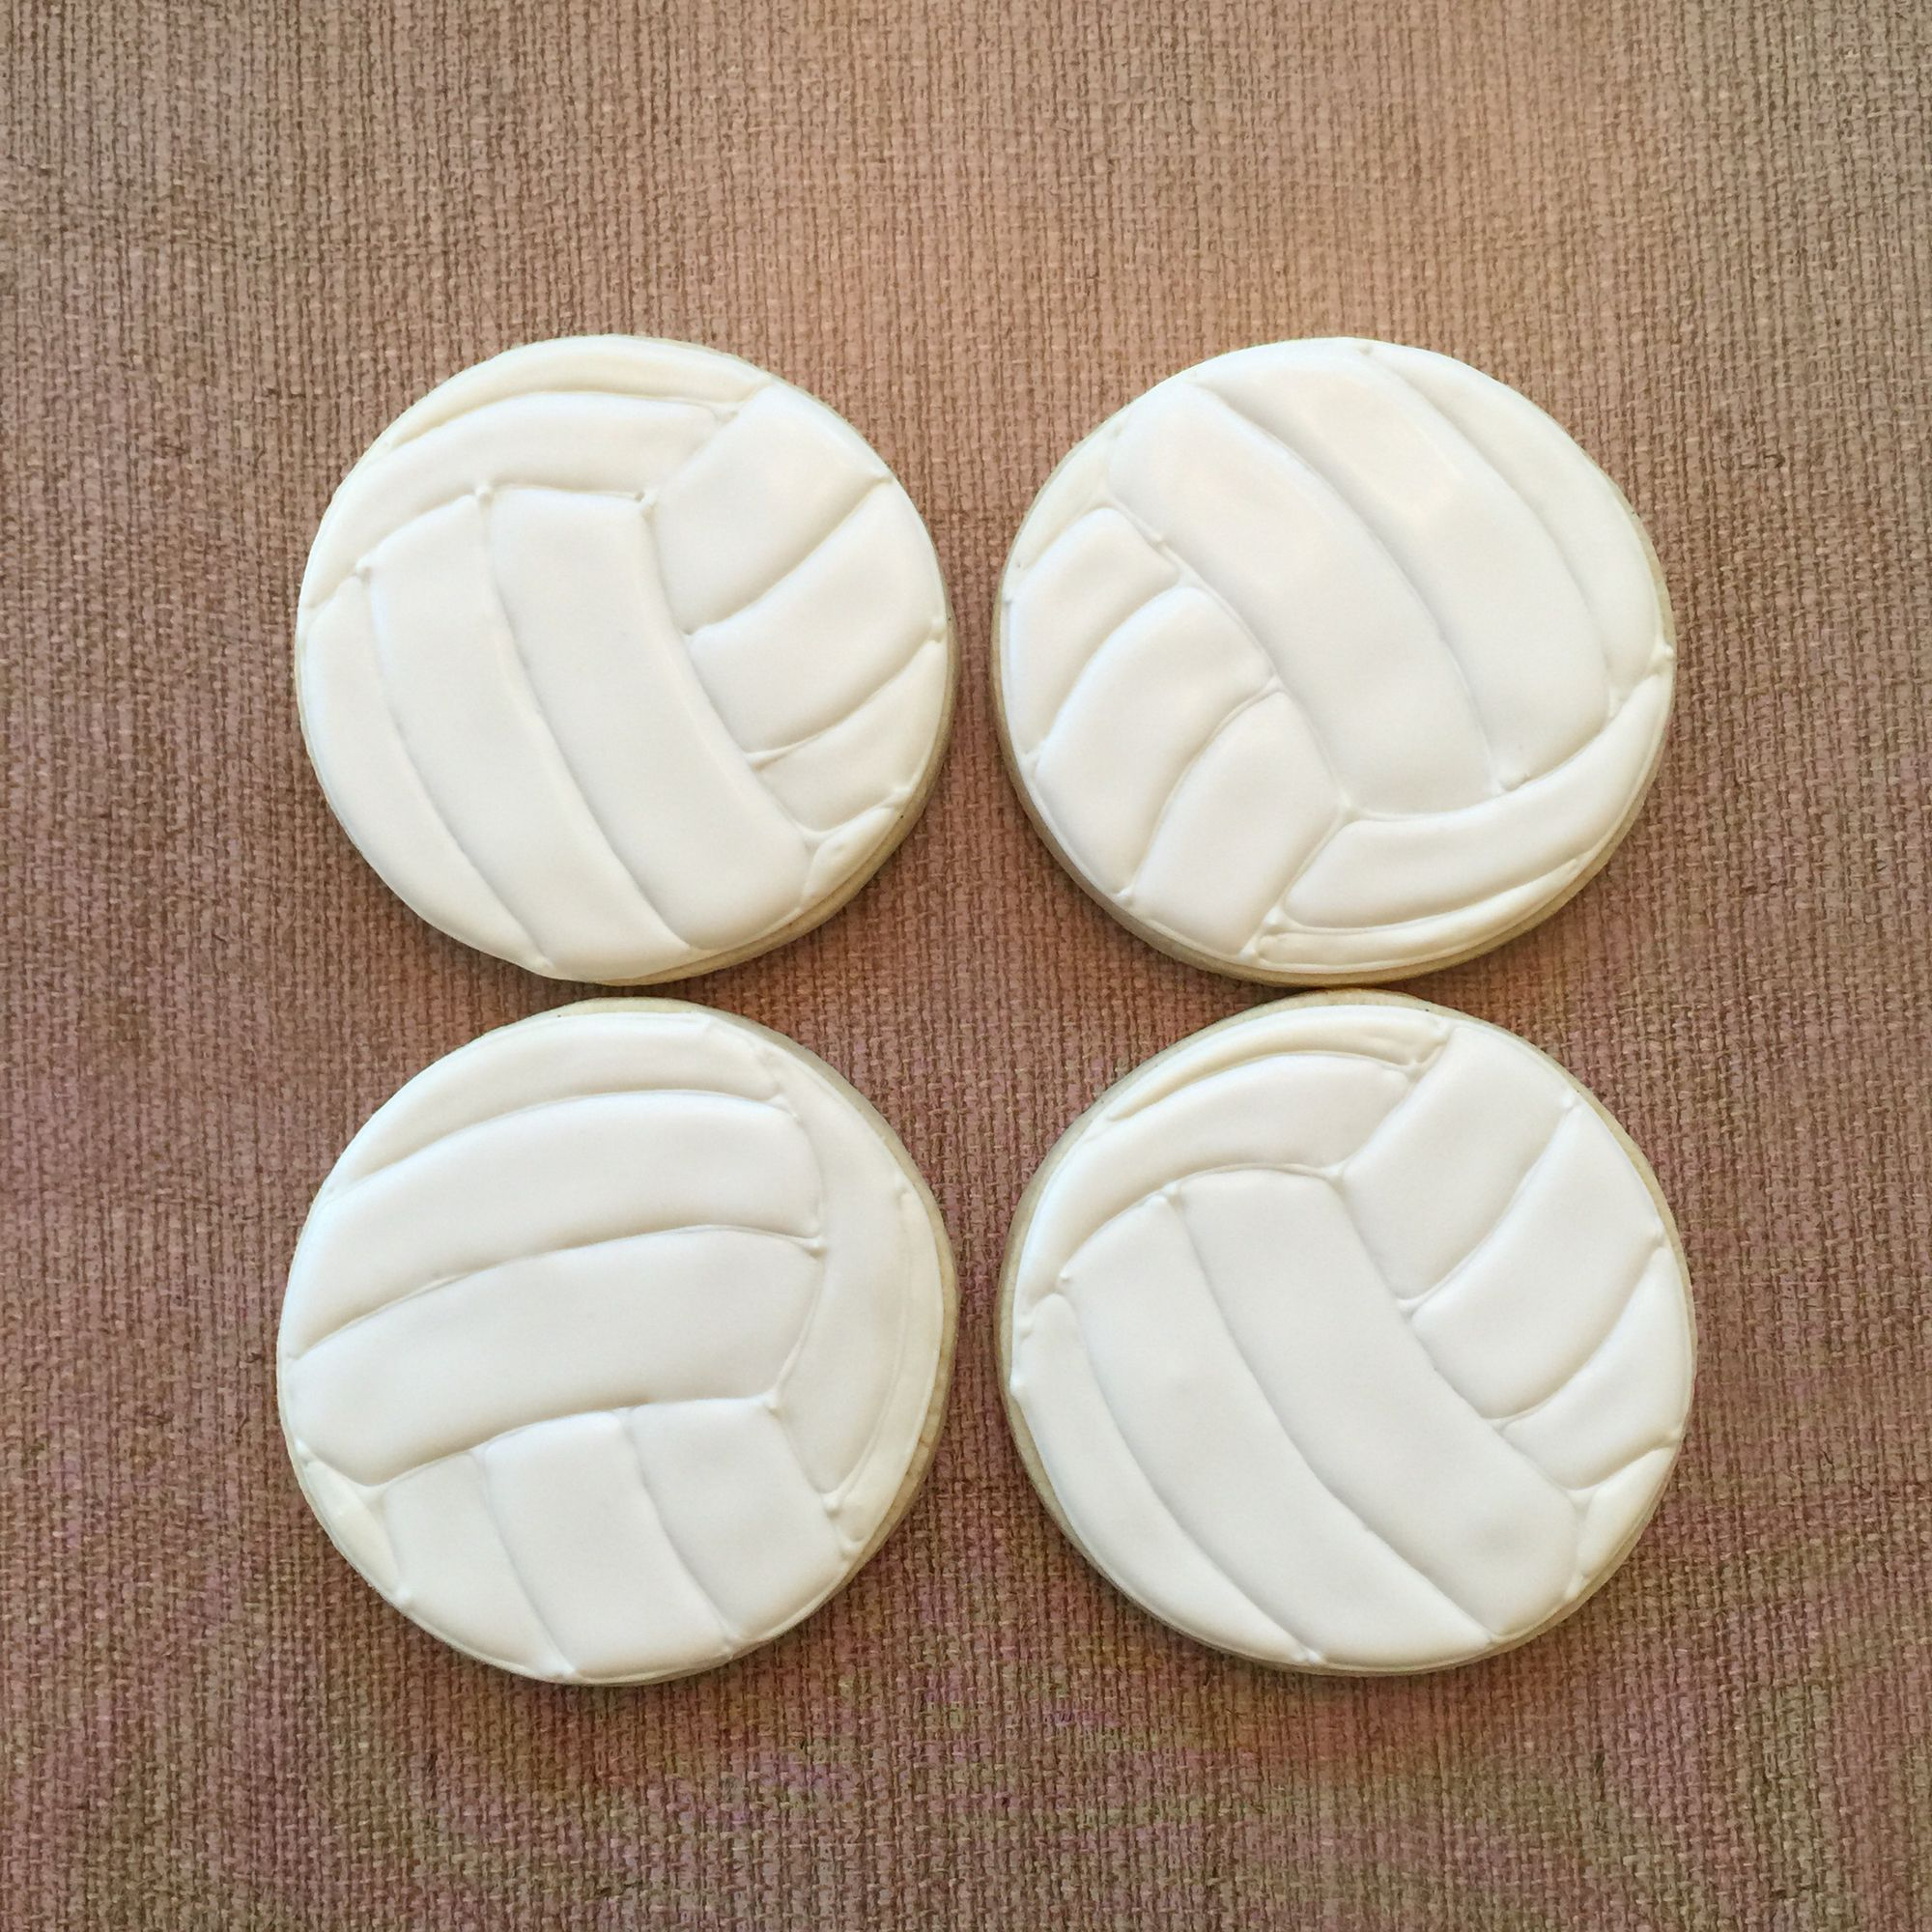 Volleyball cookies by Cami's Cookies of Austin, TX